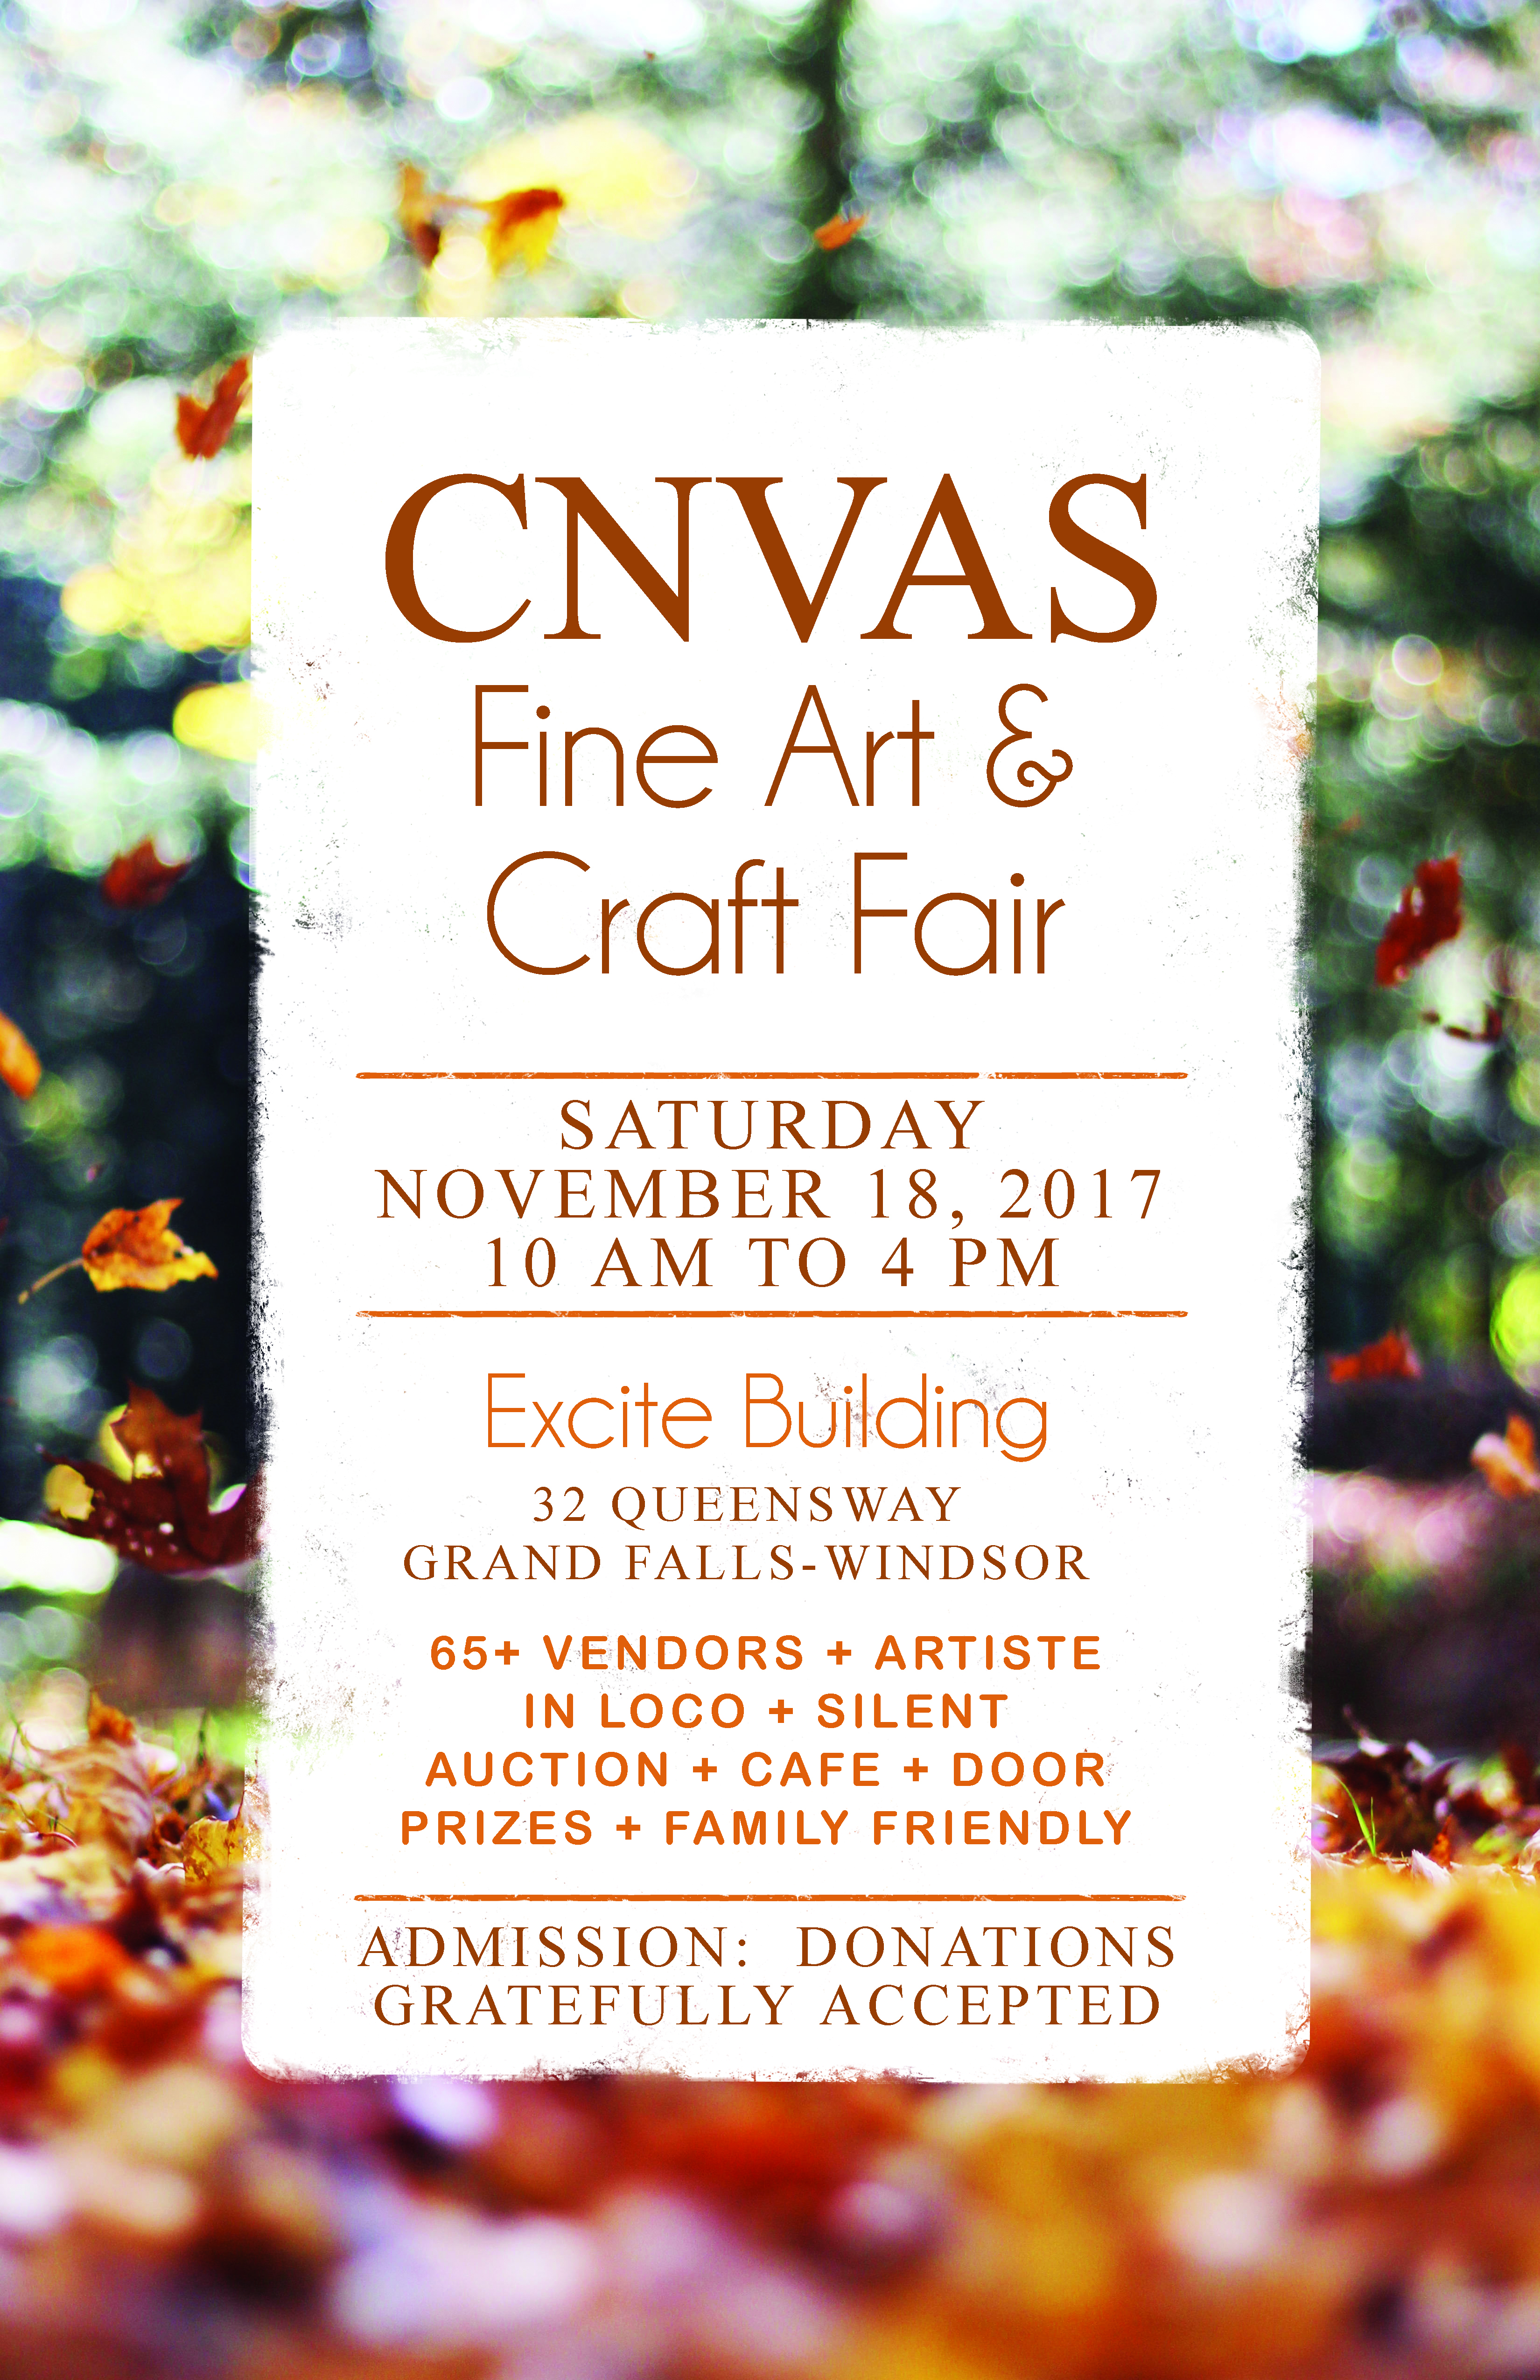 CNVAS Fall Fair 2017 Announcement